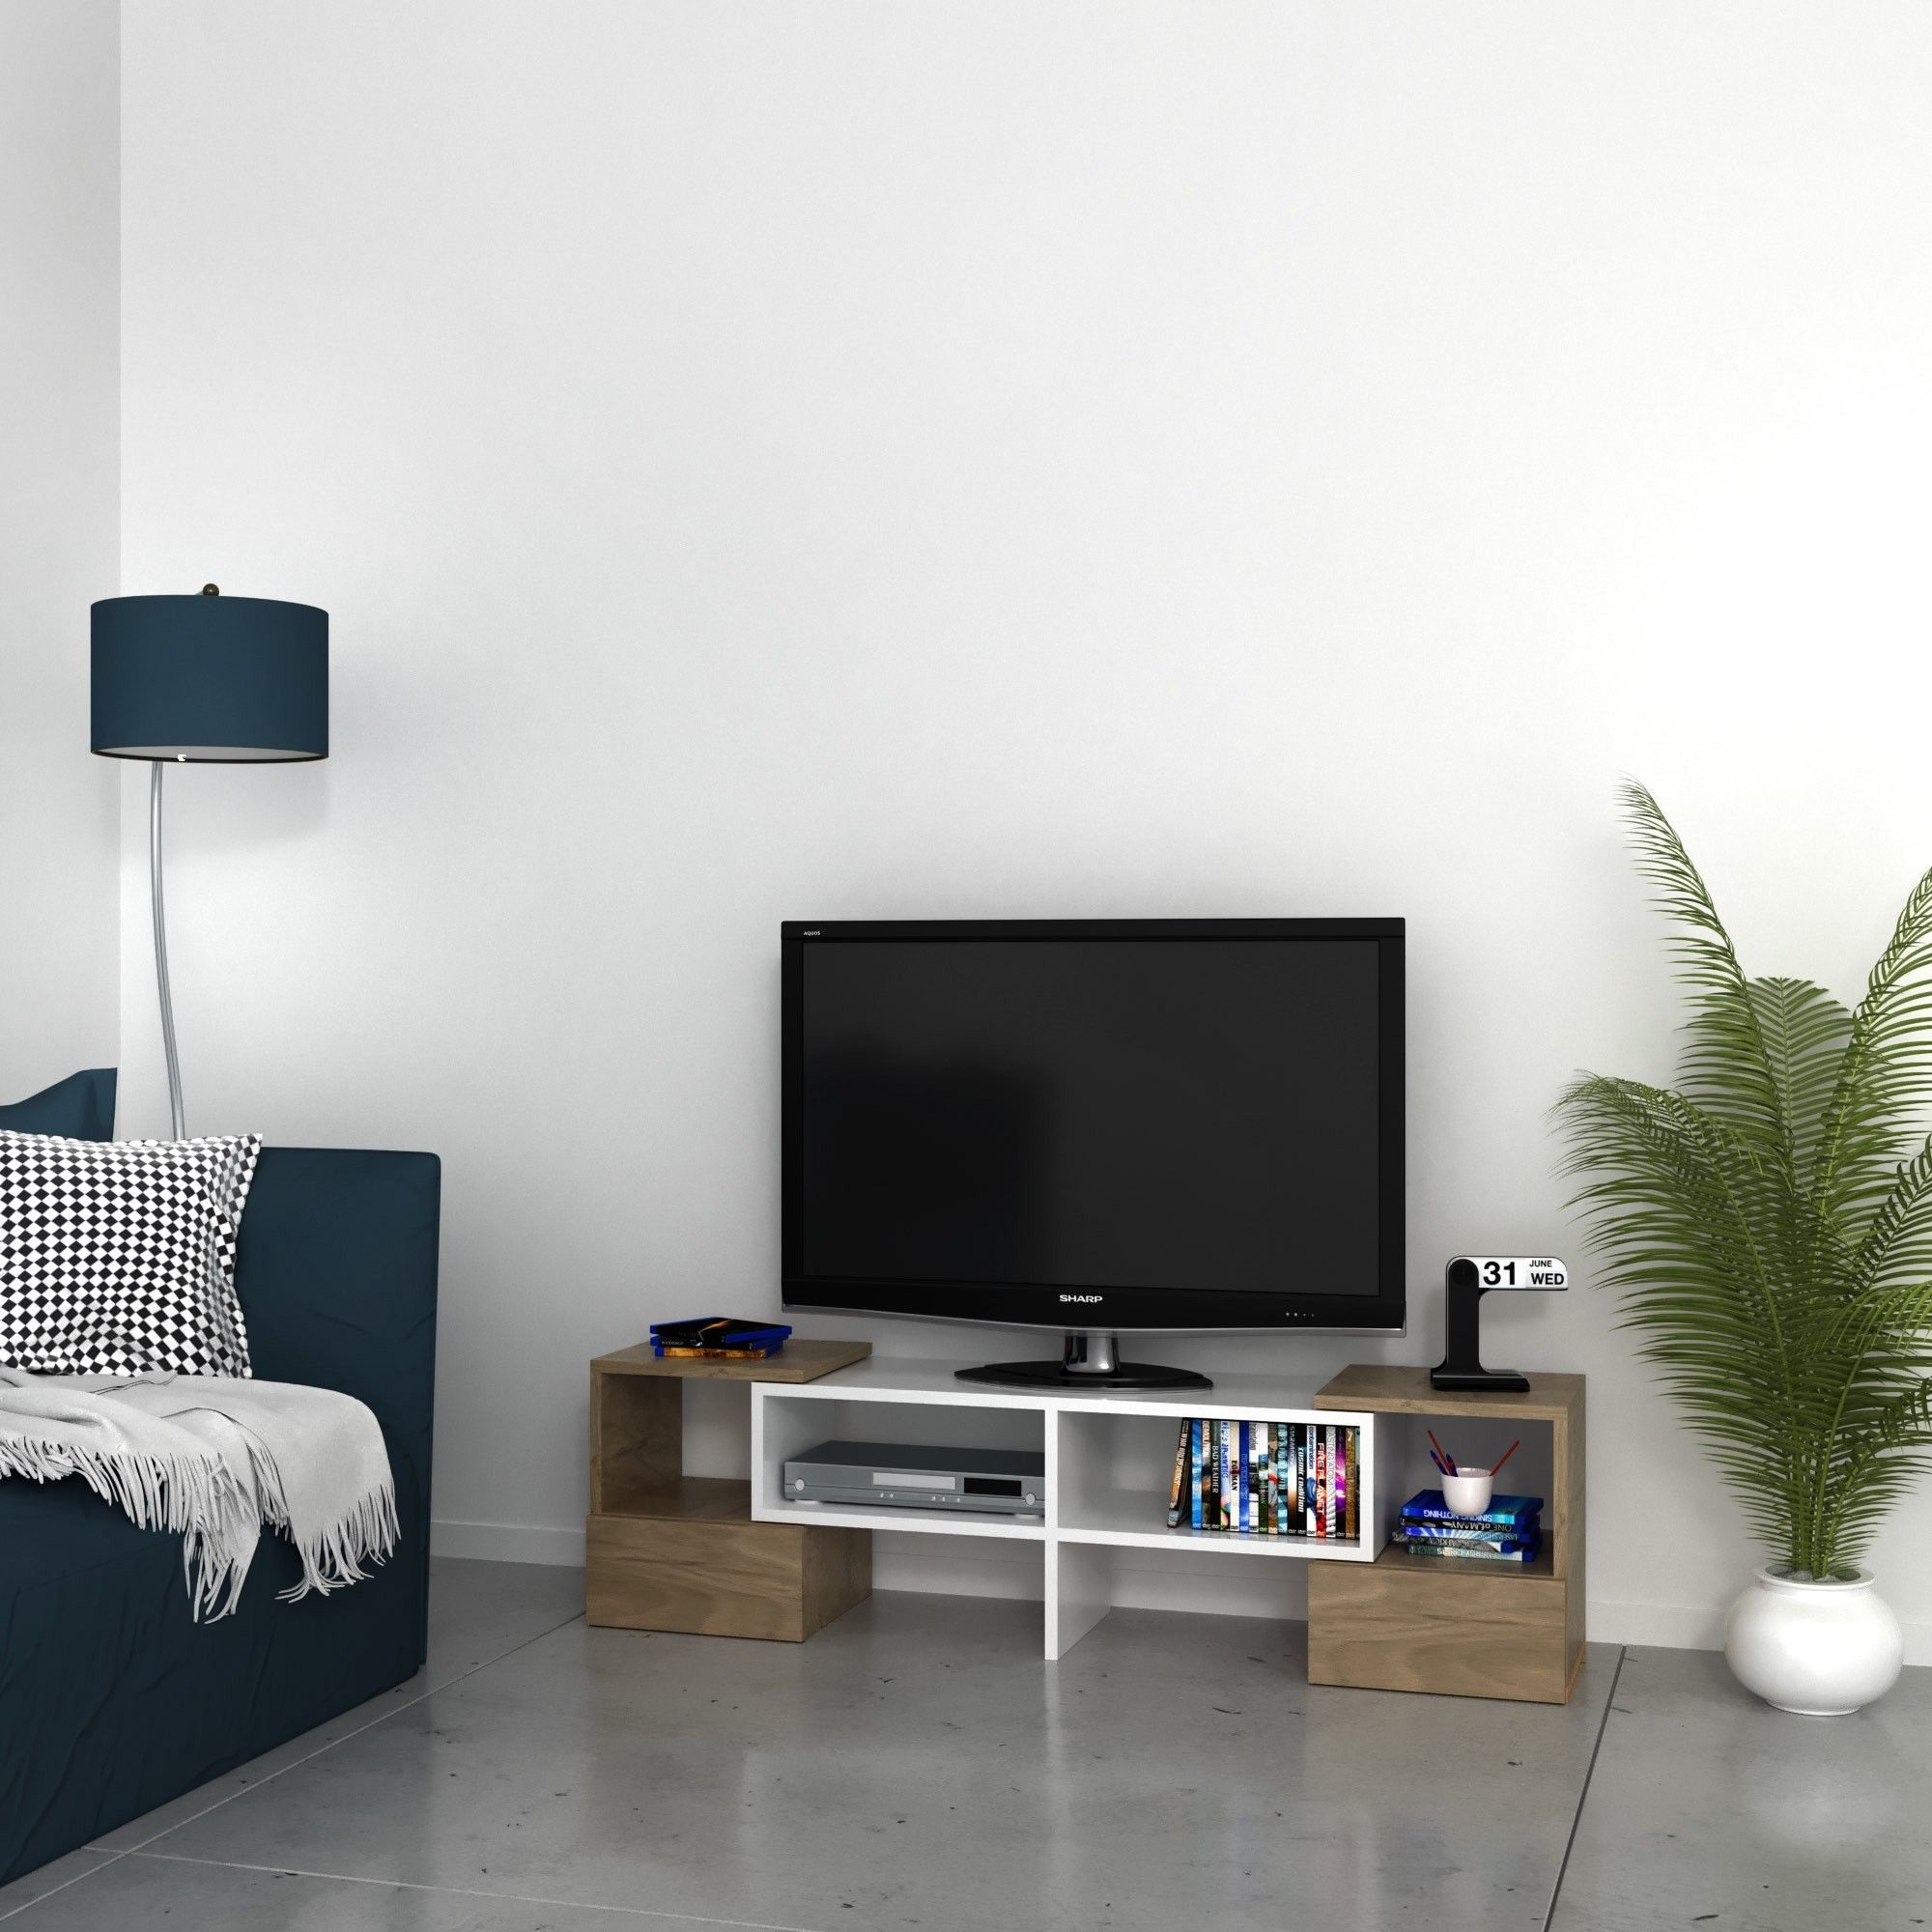 Porta Tv Angolare Design.Mobile Tv Angolare Design Moderno In Legno Harrison